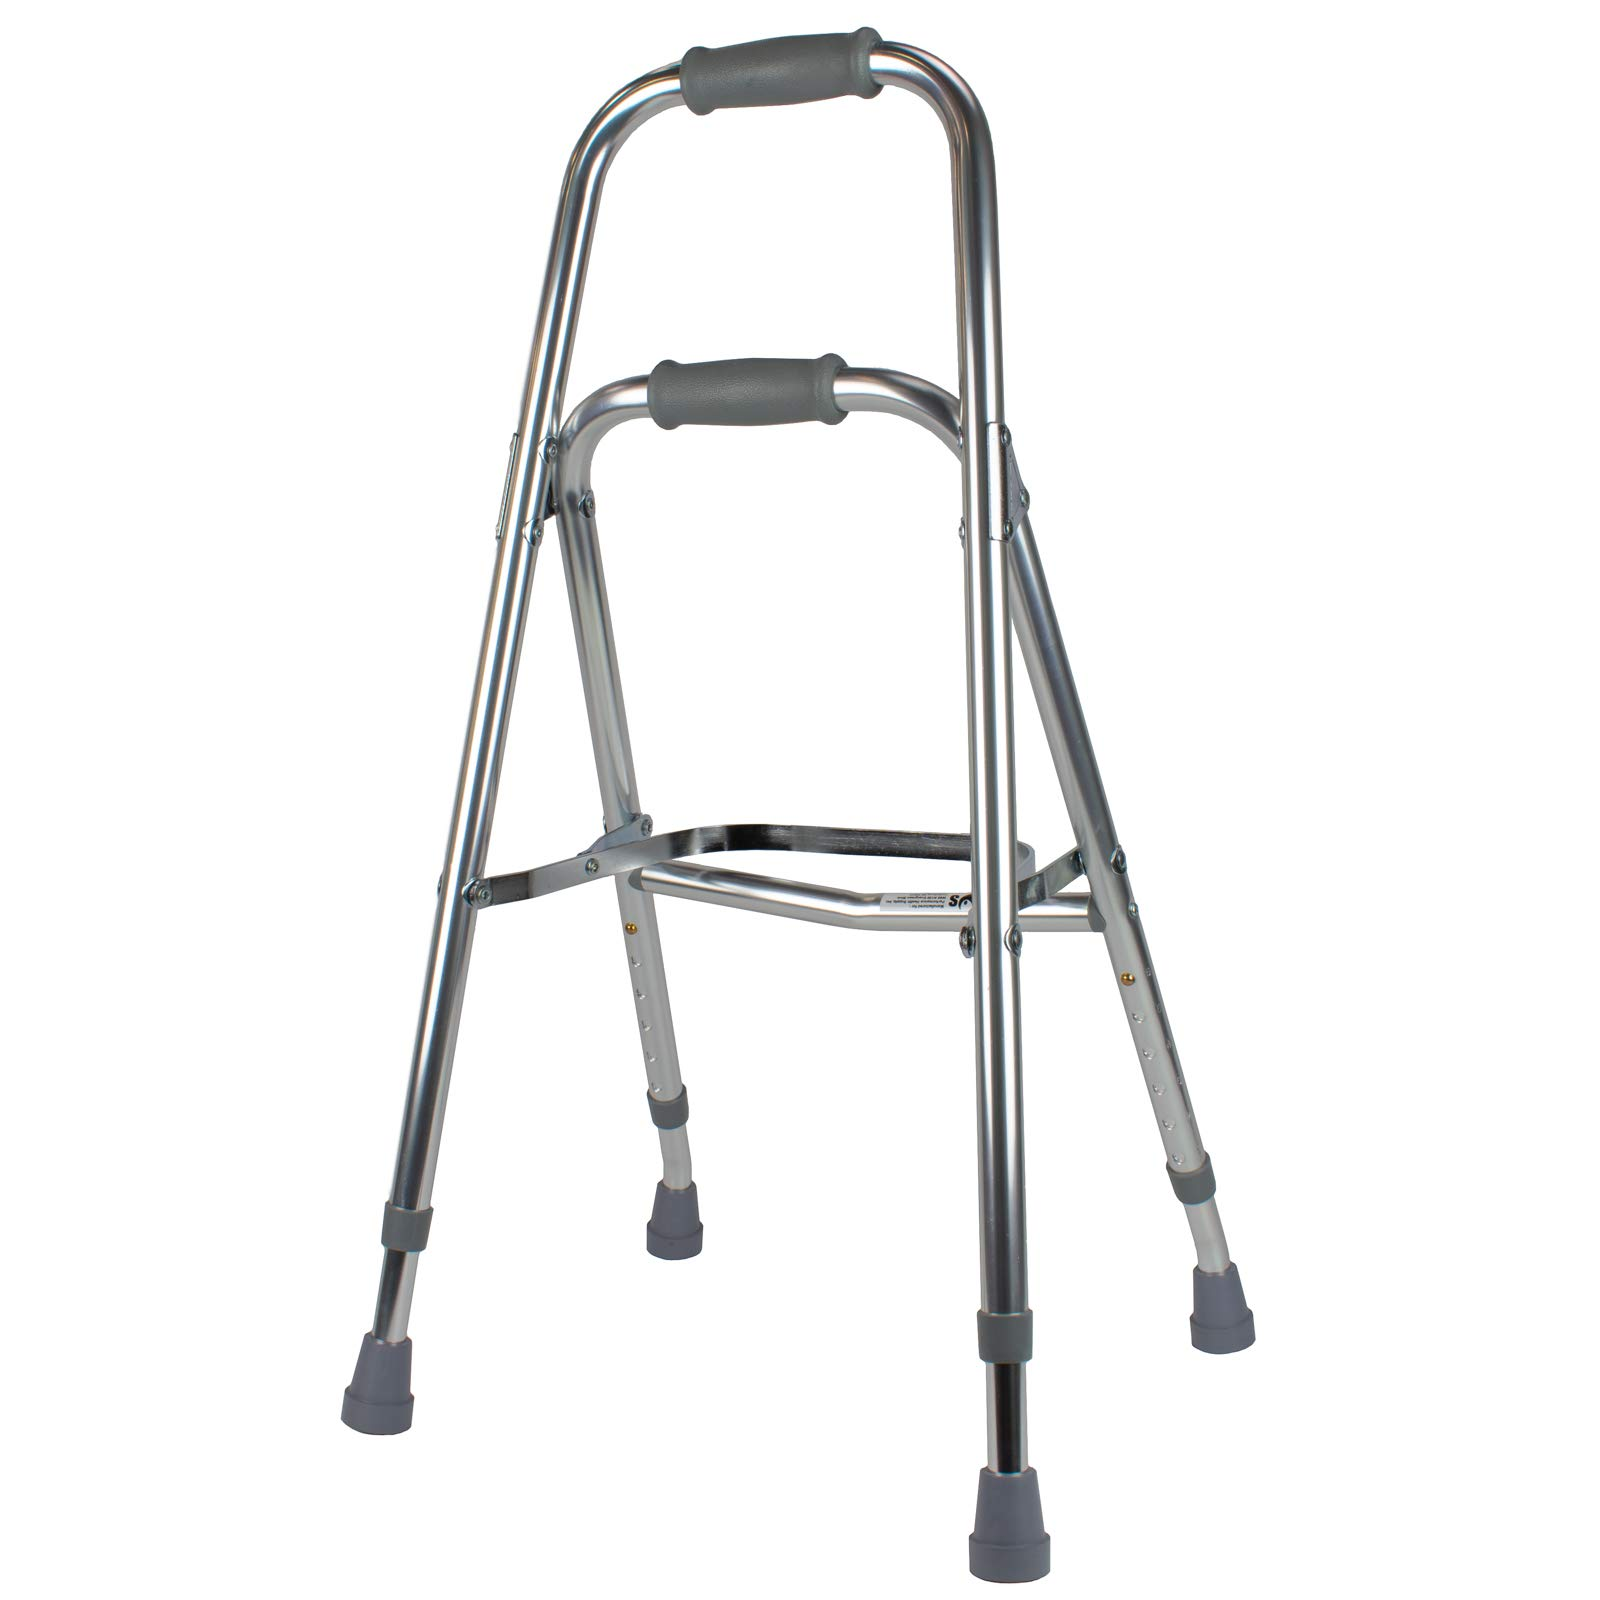 Days Hemi Walker, Mobility Aid for Elderly, Handicapped, Disabled users, One Arm or Hand Walker, Folding Walker, Aluminum Support Walker, Height Adjustable, Weight Capacity of Up to 300 Pounds by S-Day